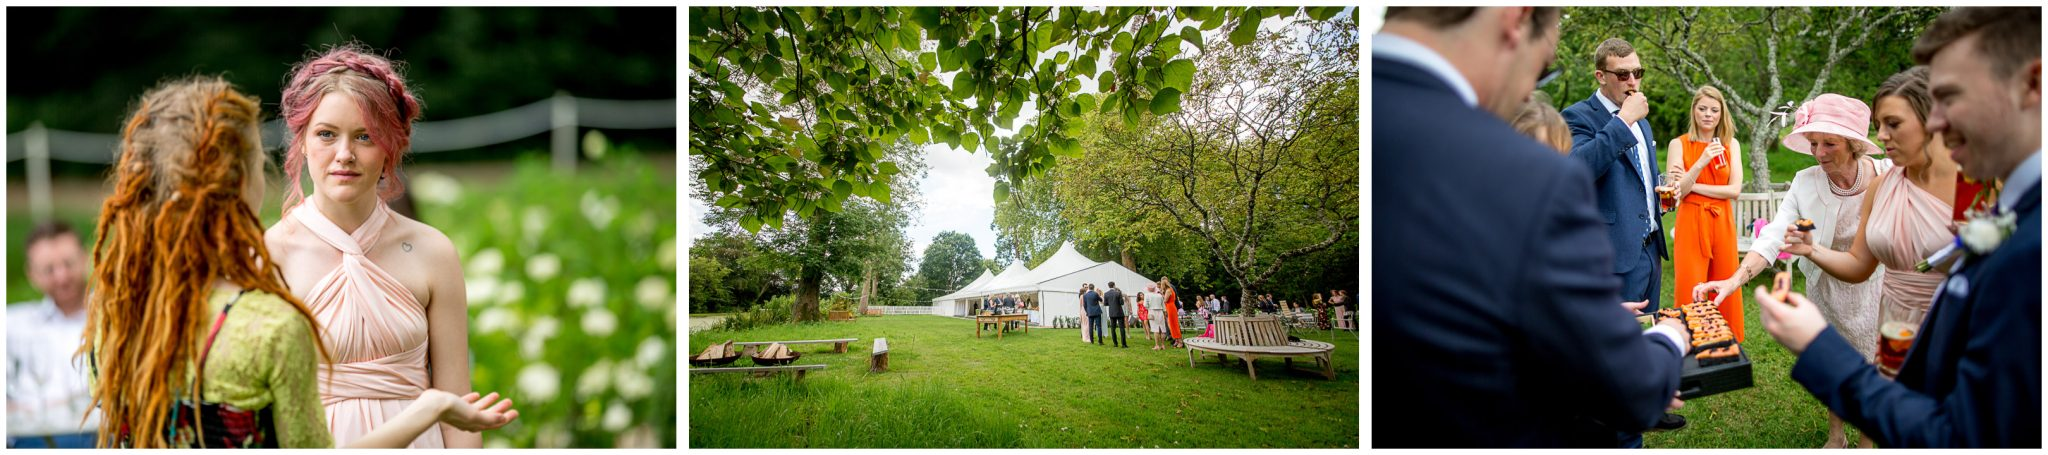 Documentary photographs of wedding guests